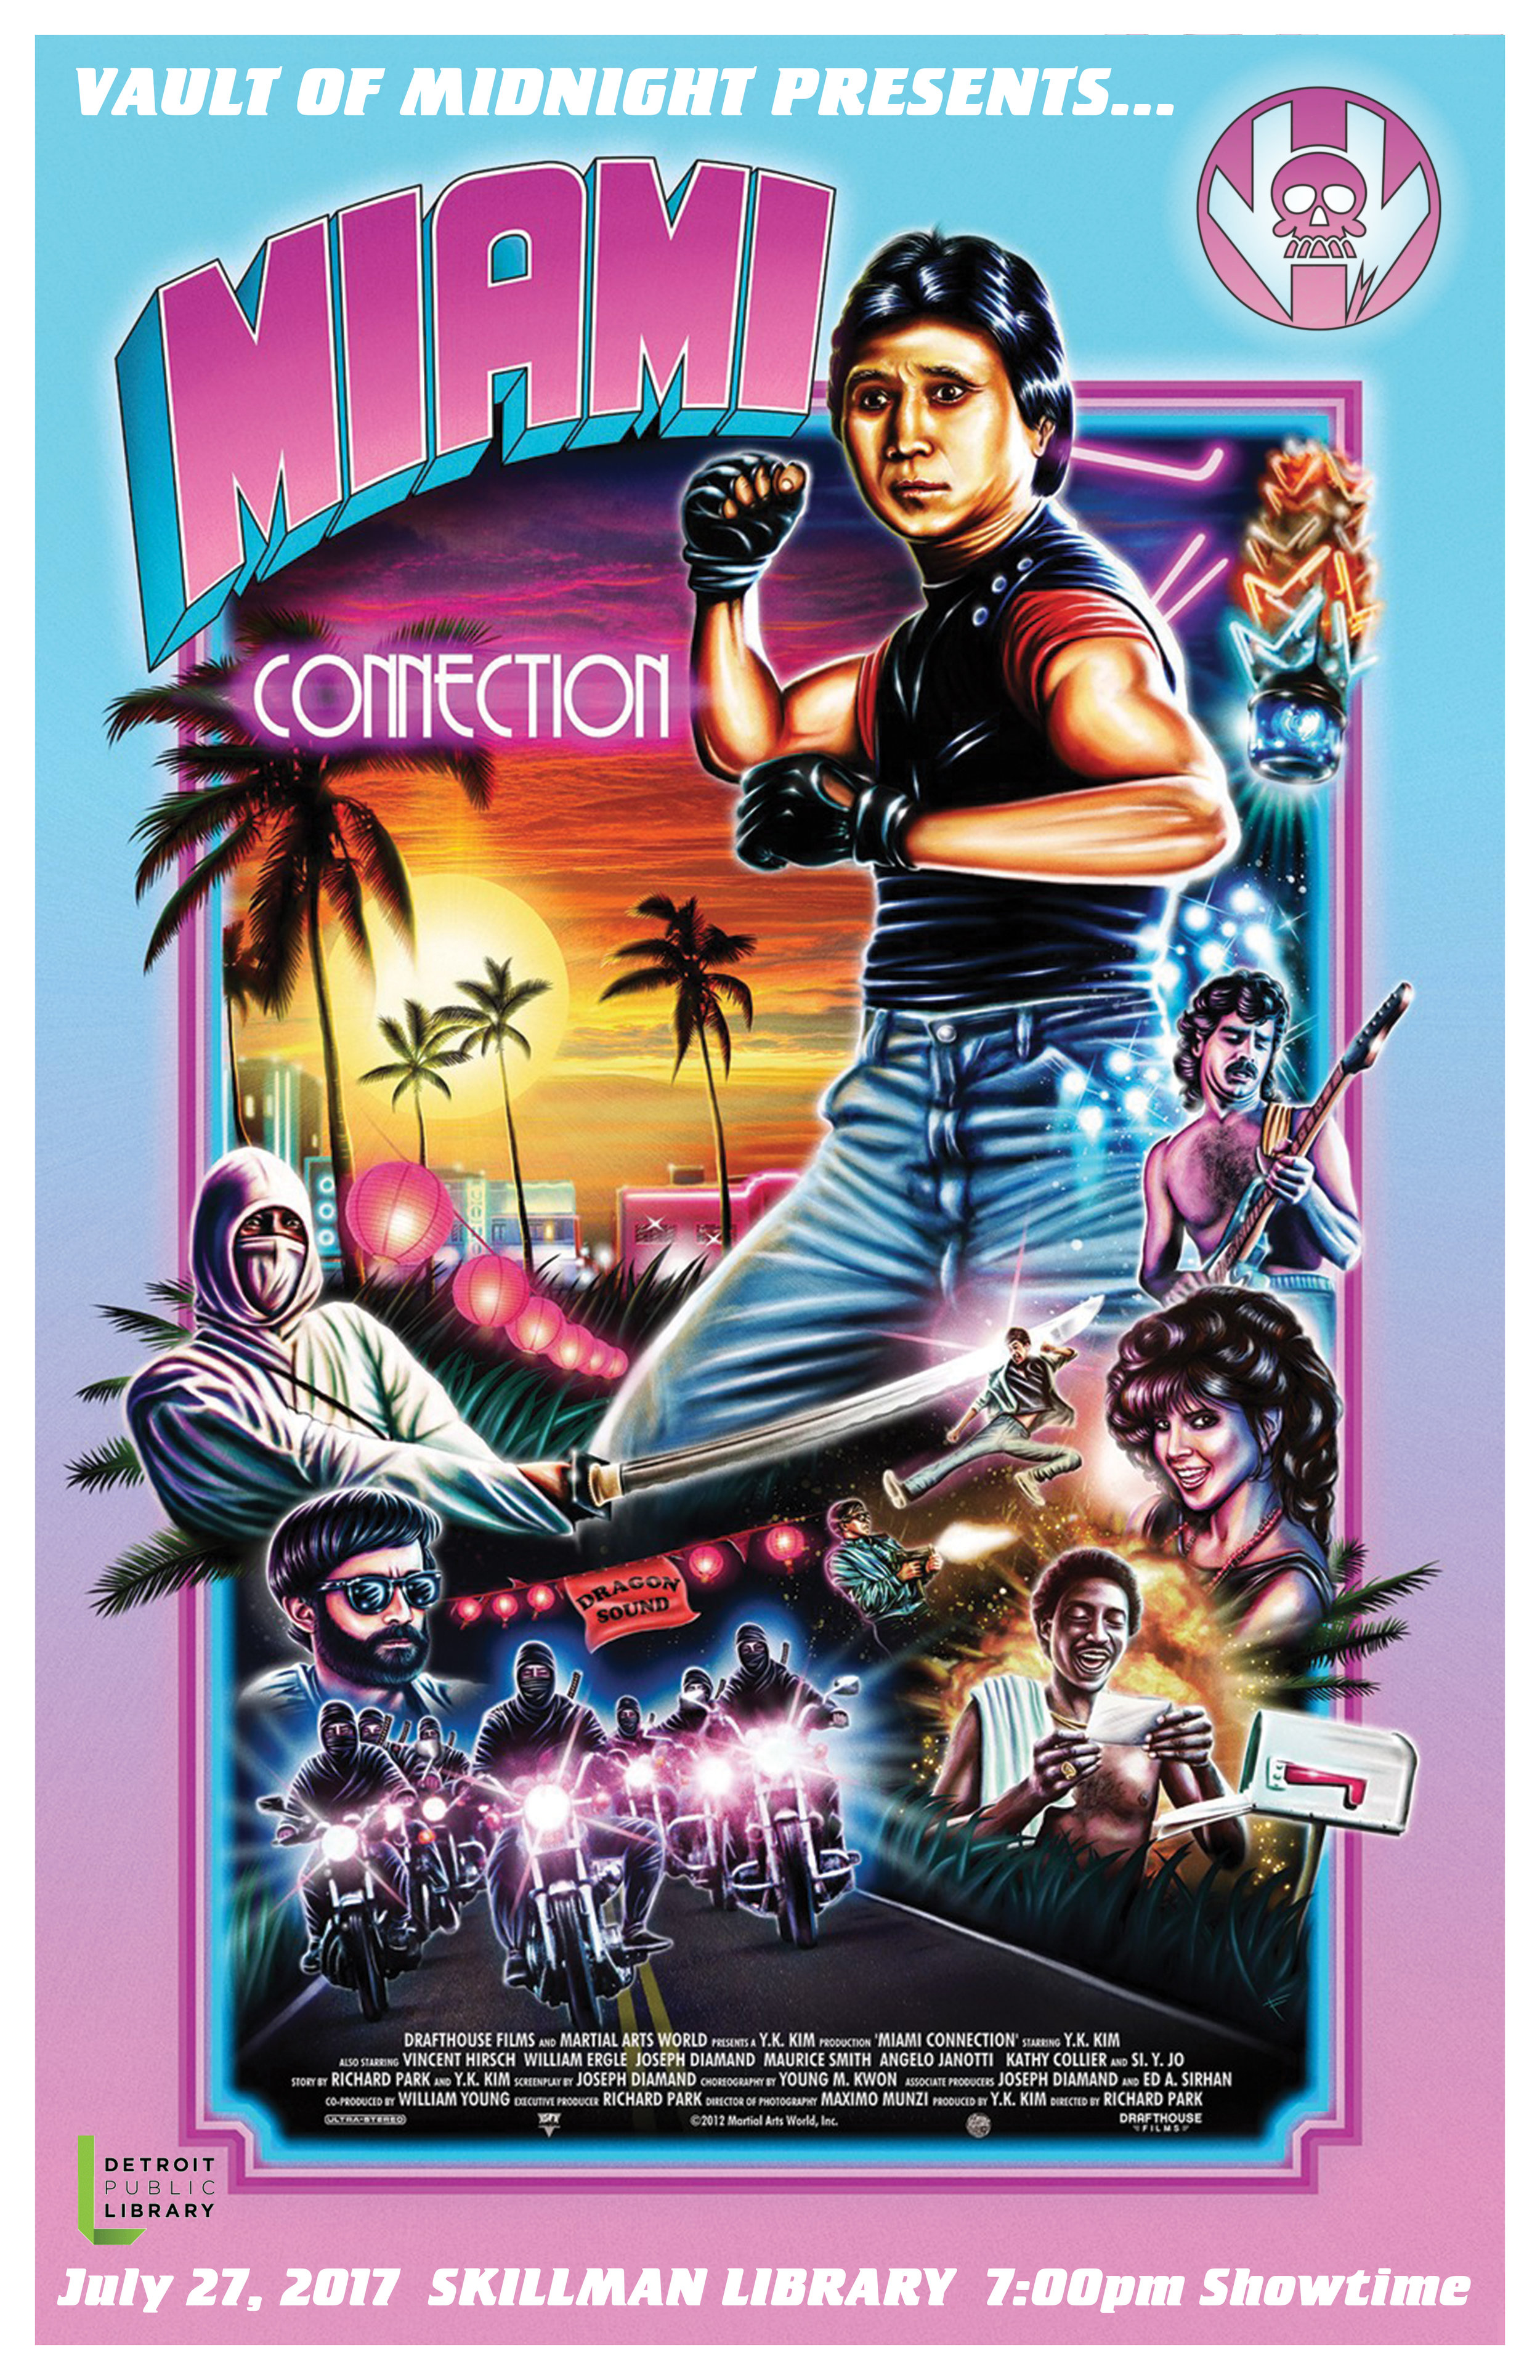 Vault of Midnight is returning to the Skillman Library on July 27 to screen one of our favorite cult films, The Miami Connection! Not only is entry free, but so is the popcorn! Come cheer on Dragon Sound, a local college band, as they fight against ninja drug dealers trying to take over their club! Showtime is at 7:00 pm!   Watch the Trailer Here!